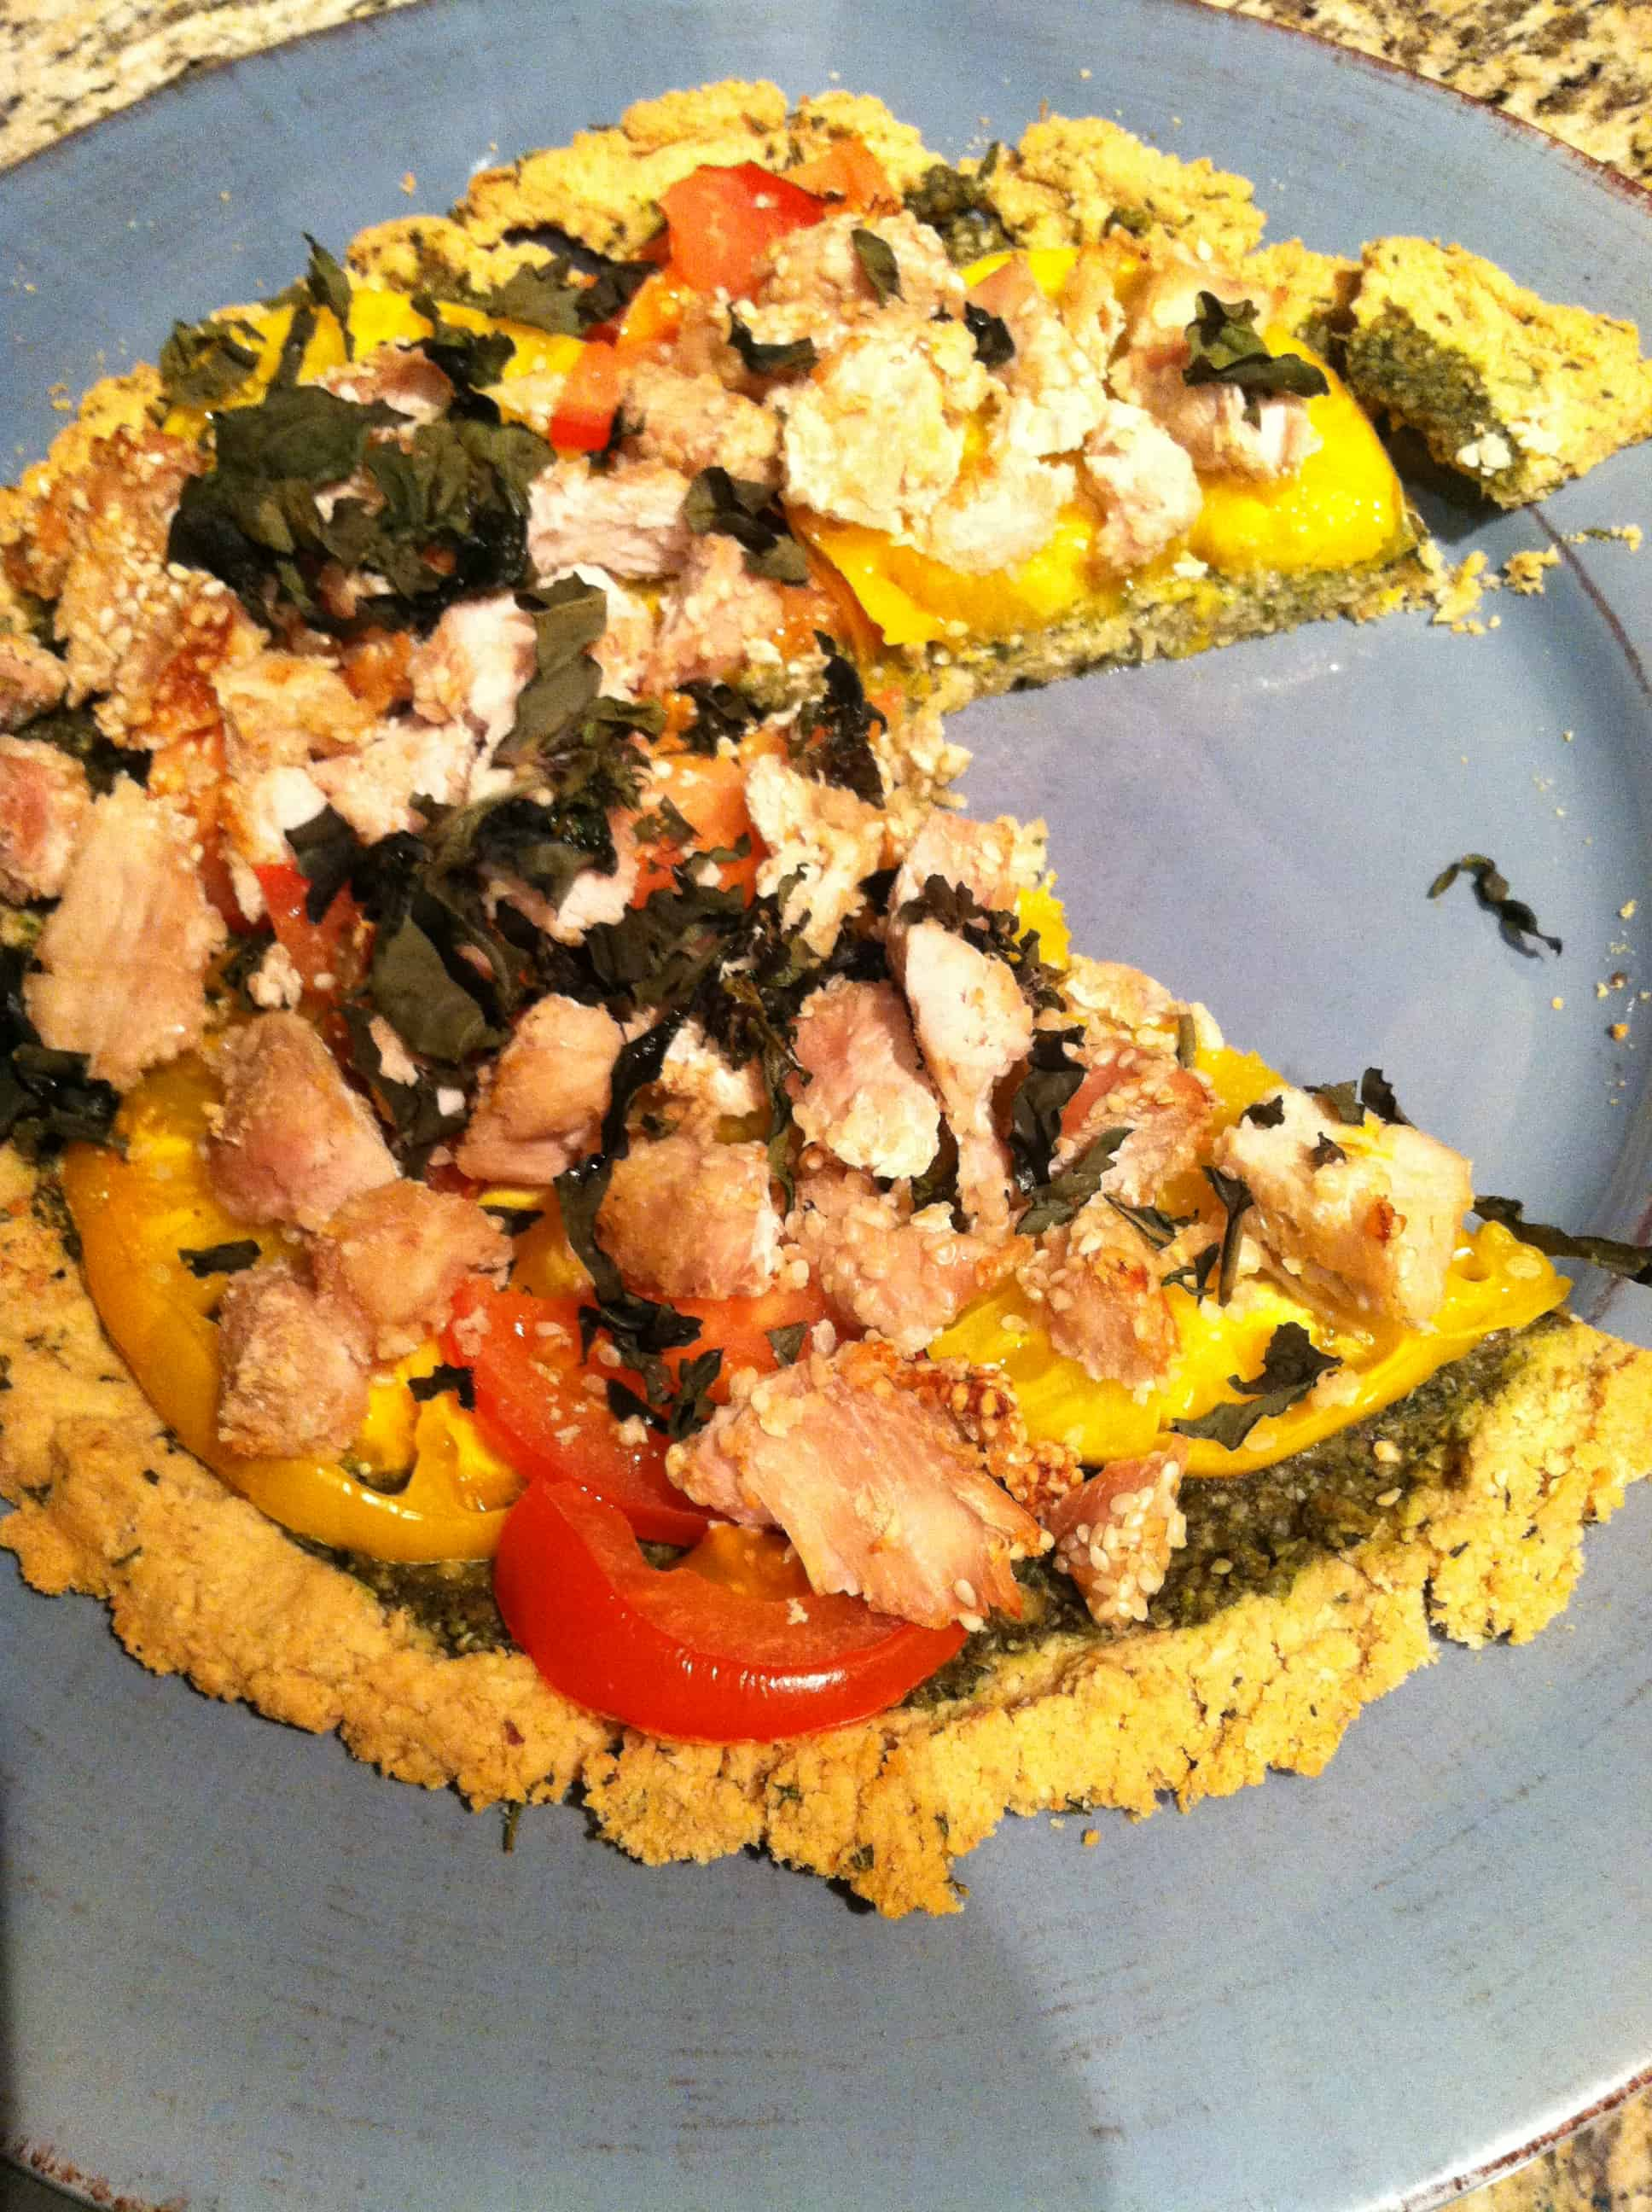 Easy Gluten-Free Herbed Pizza Crust topped with Sesame Turkey Bites, Pesto and Fresh Tomatoes (Paleo)